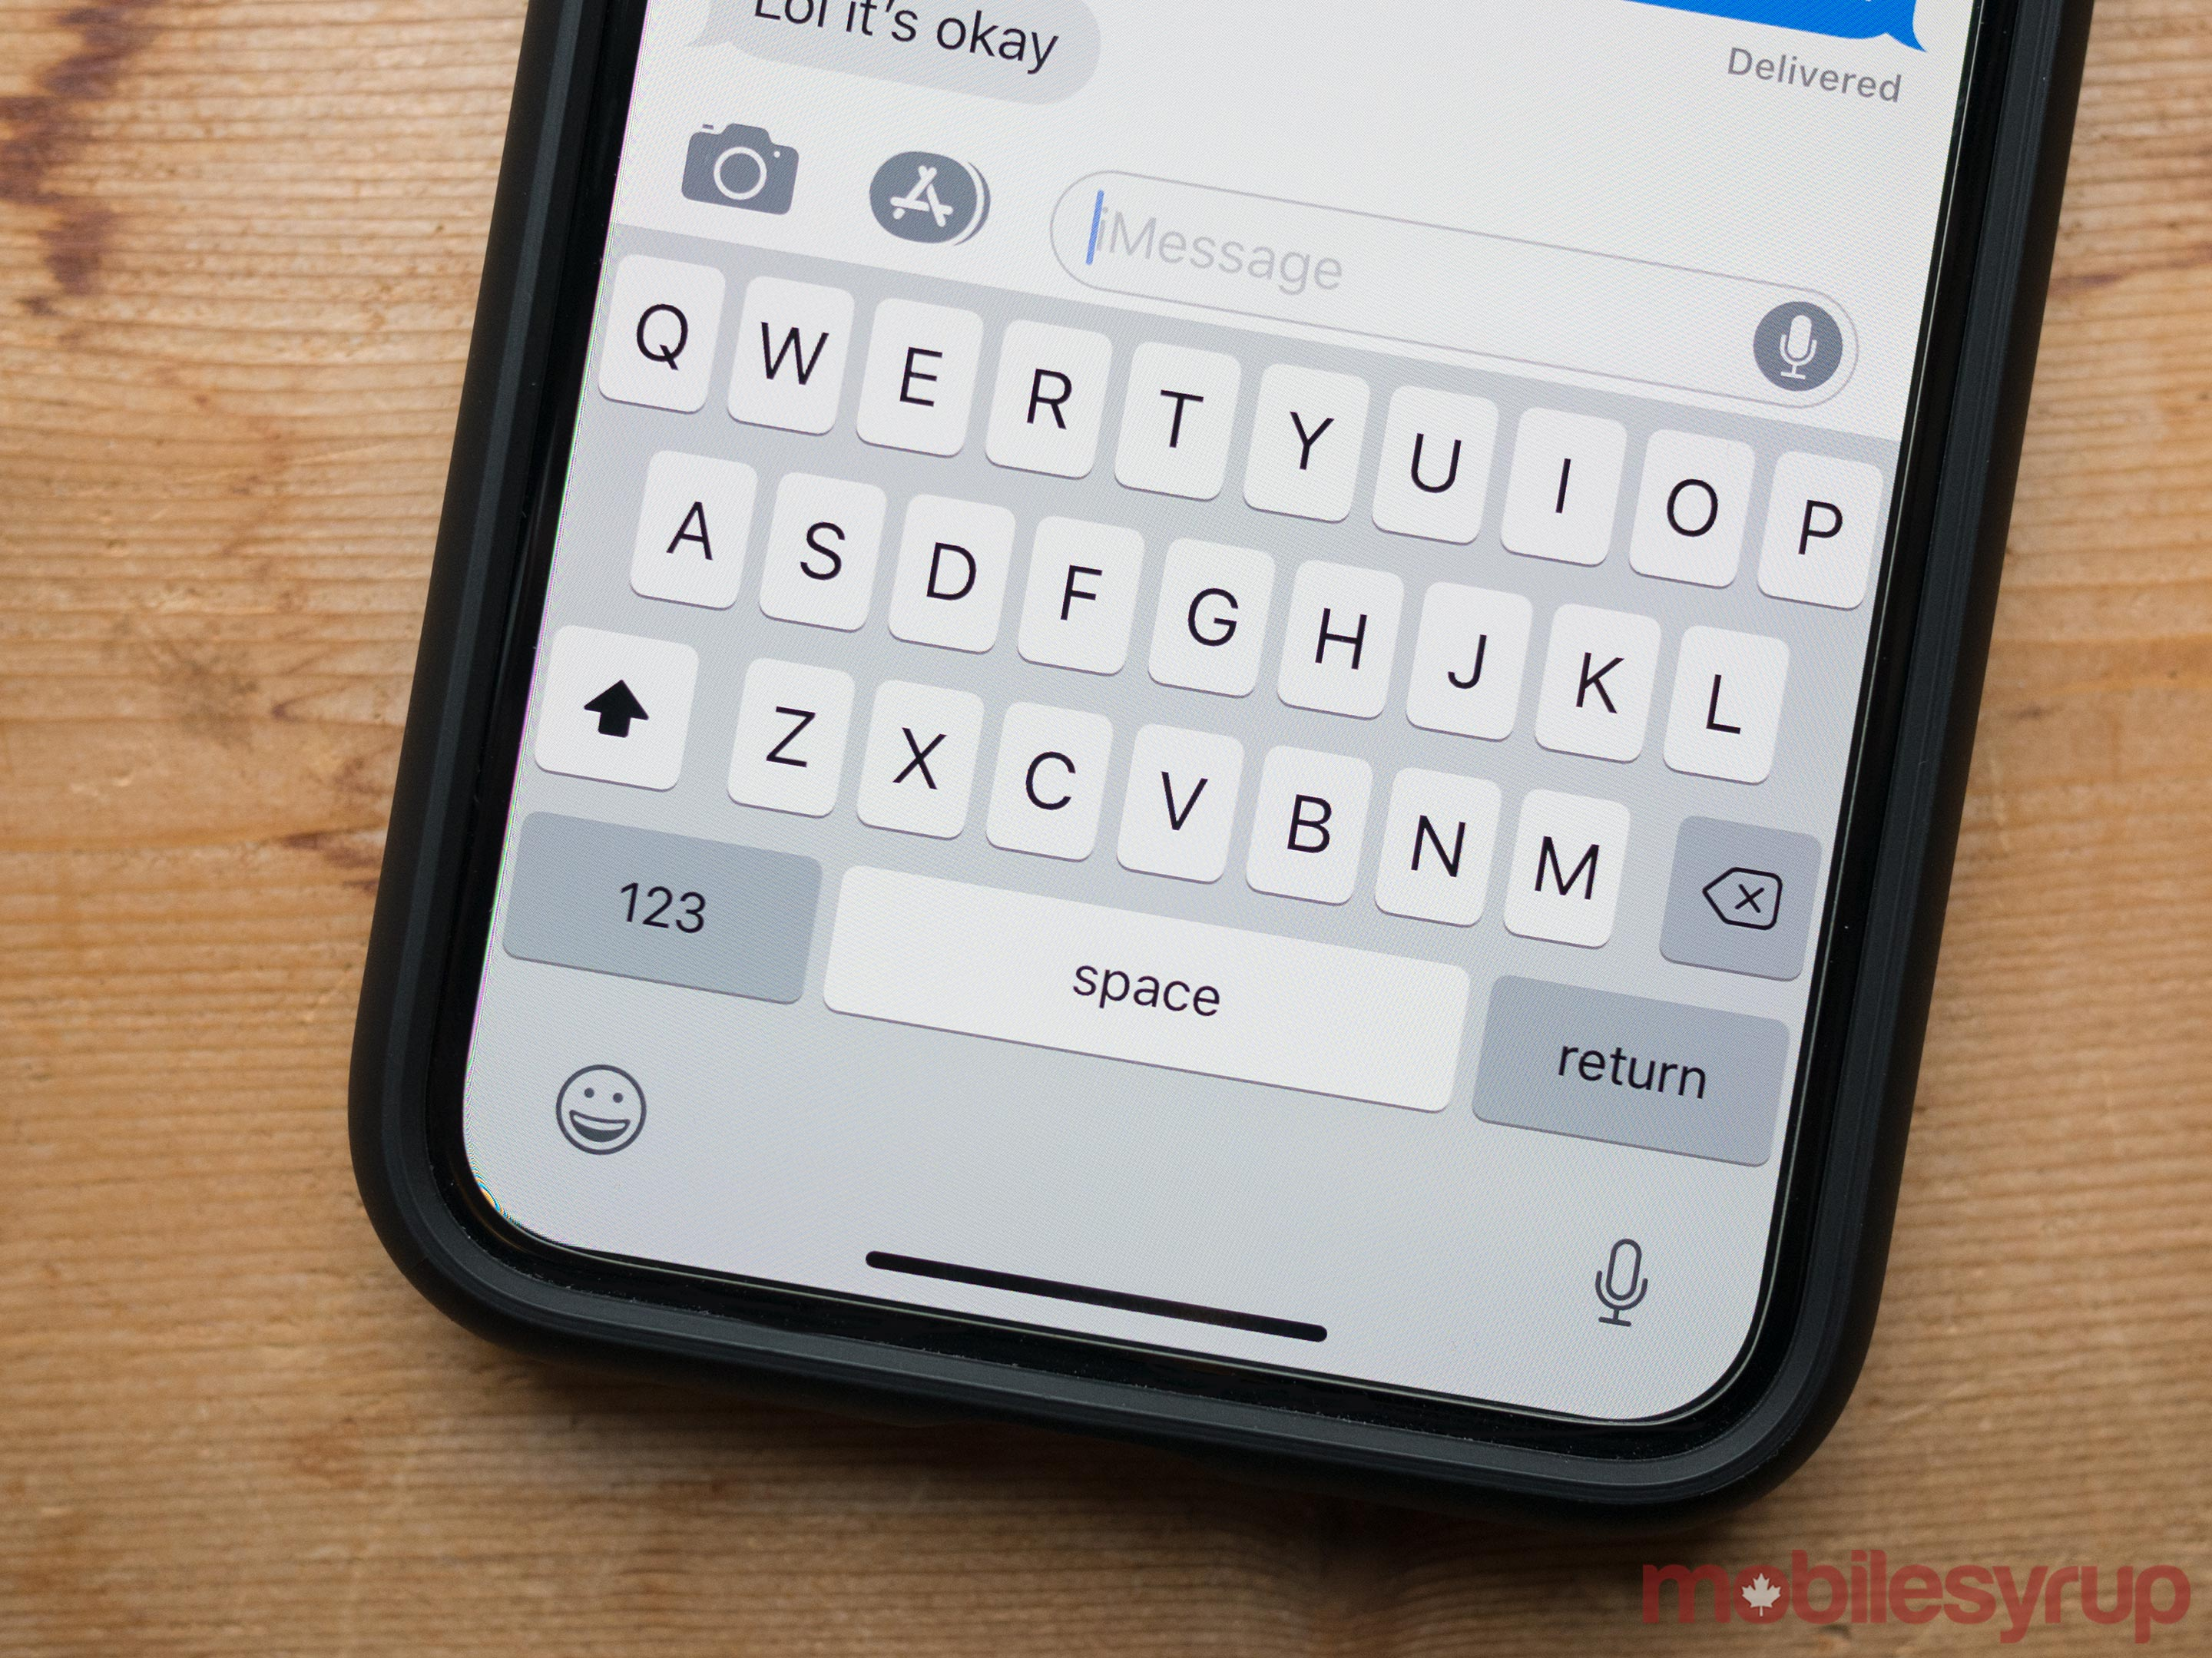 The iOS keyboard on an iPhone X -- a device without a physical home button